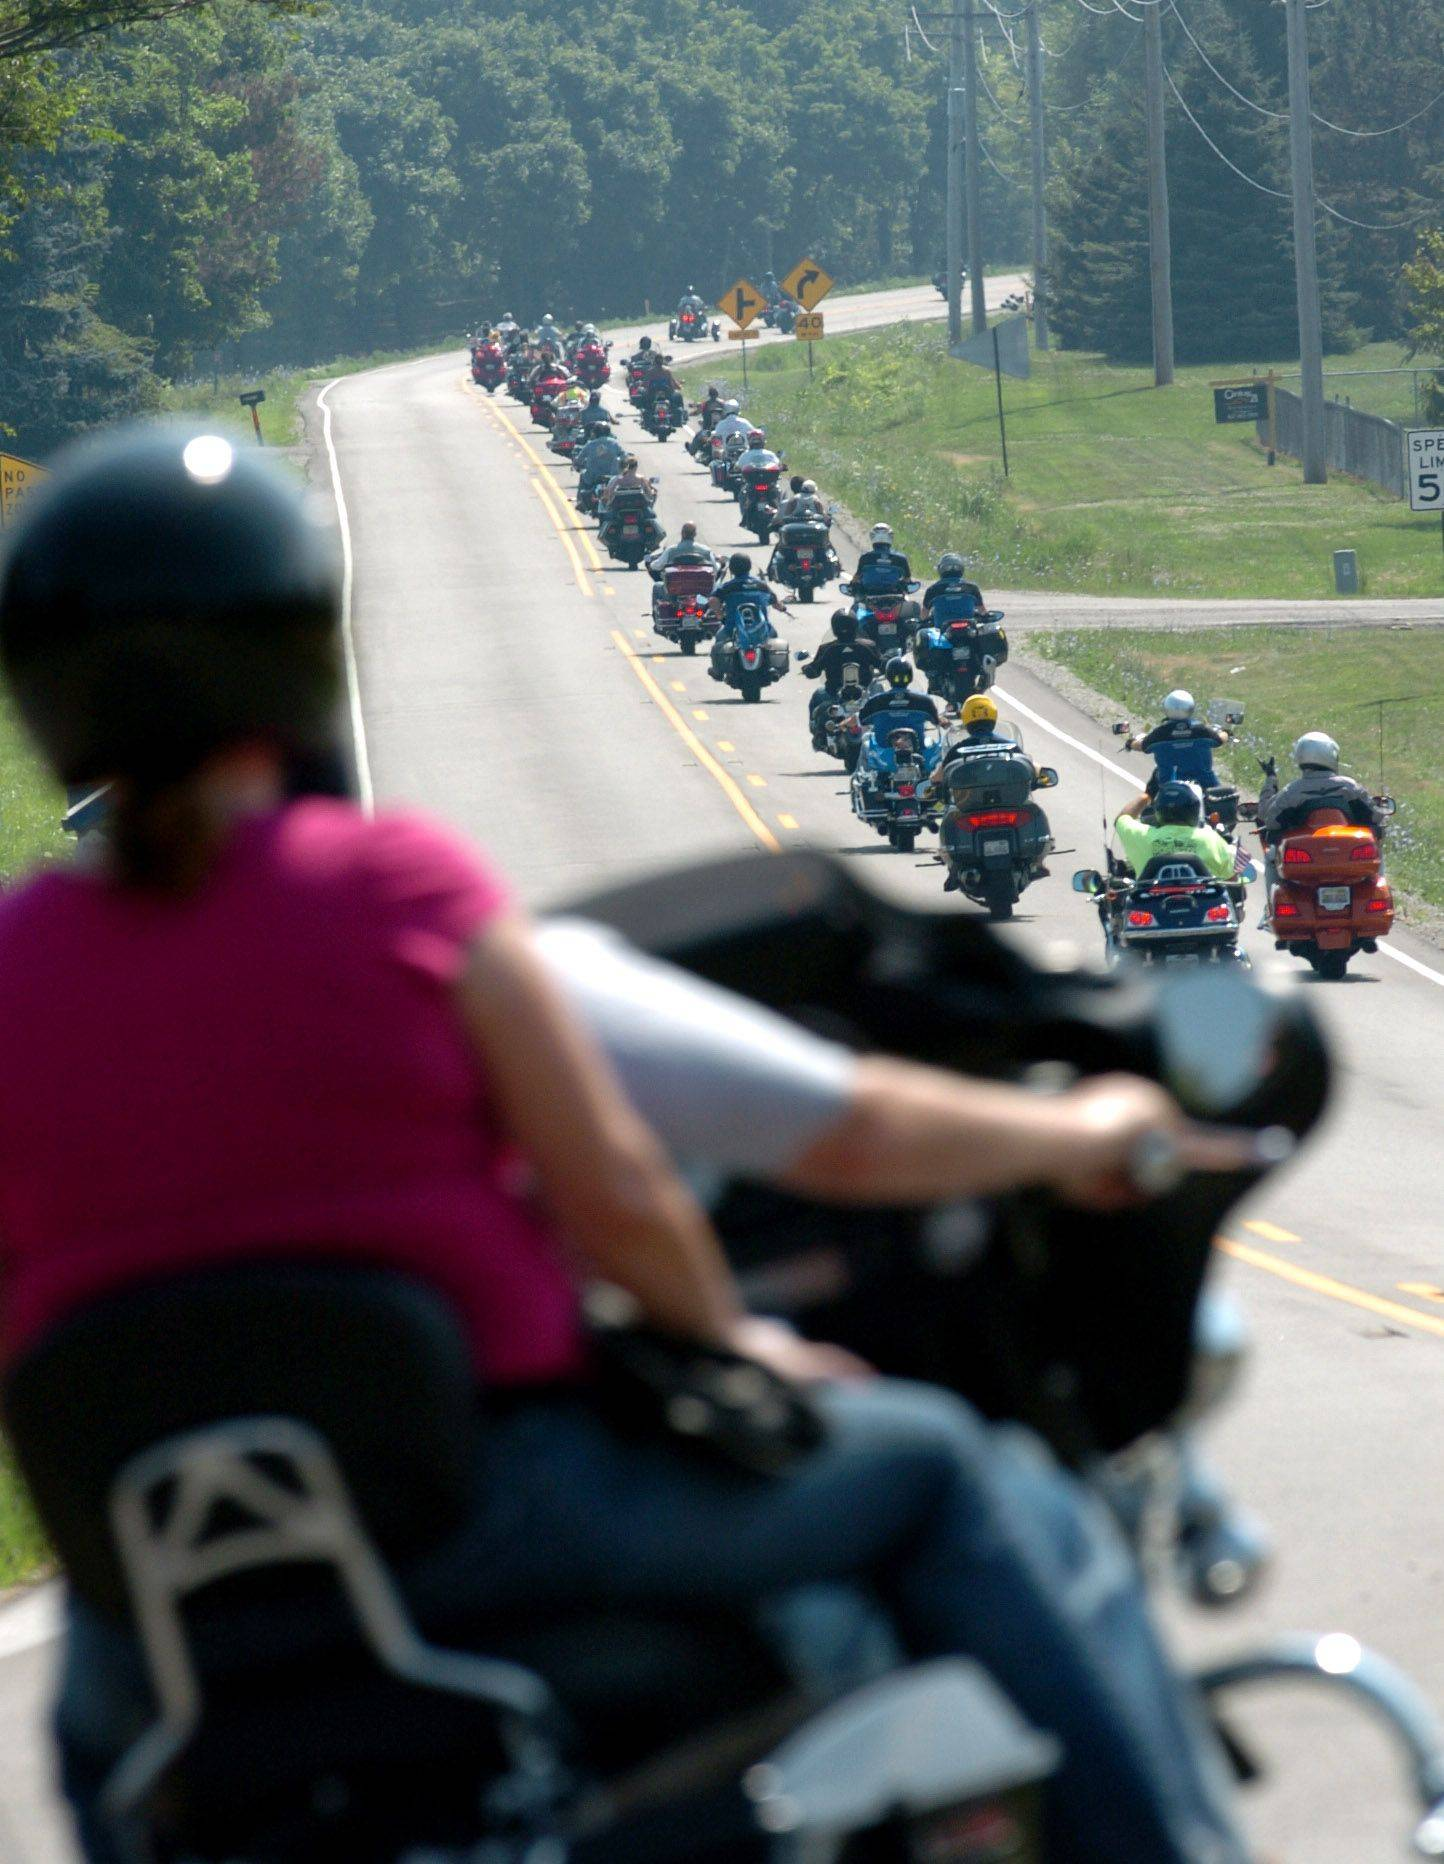 About 1,400 riders registered for Sunday's 23rd Chicagoland Ride for Kids, which took riders down Bowes Road near Plato Center in Elgin.